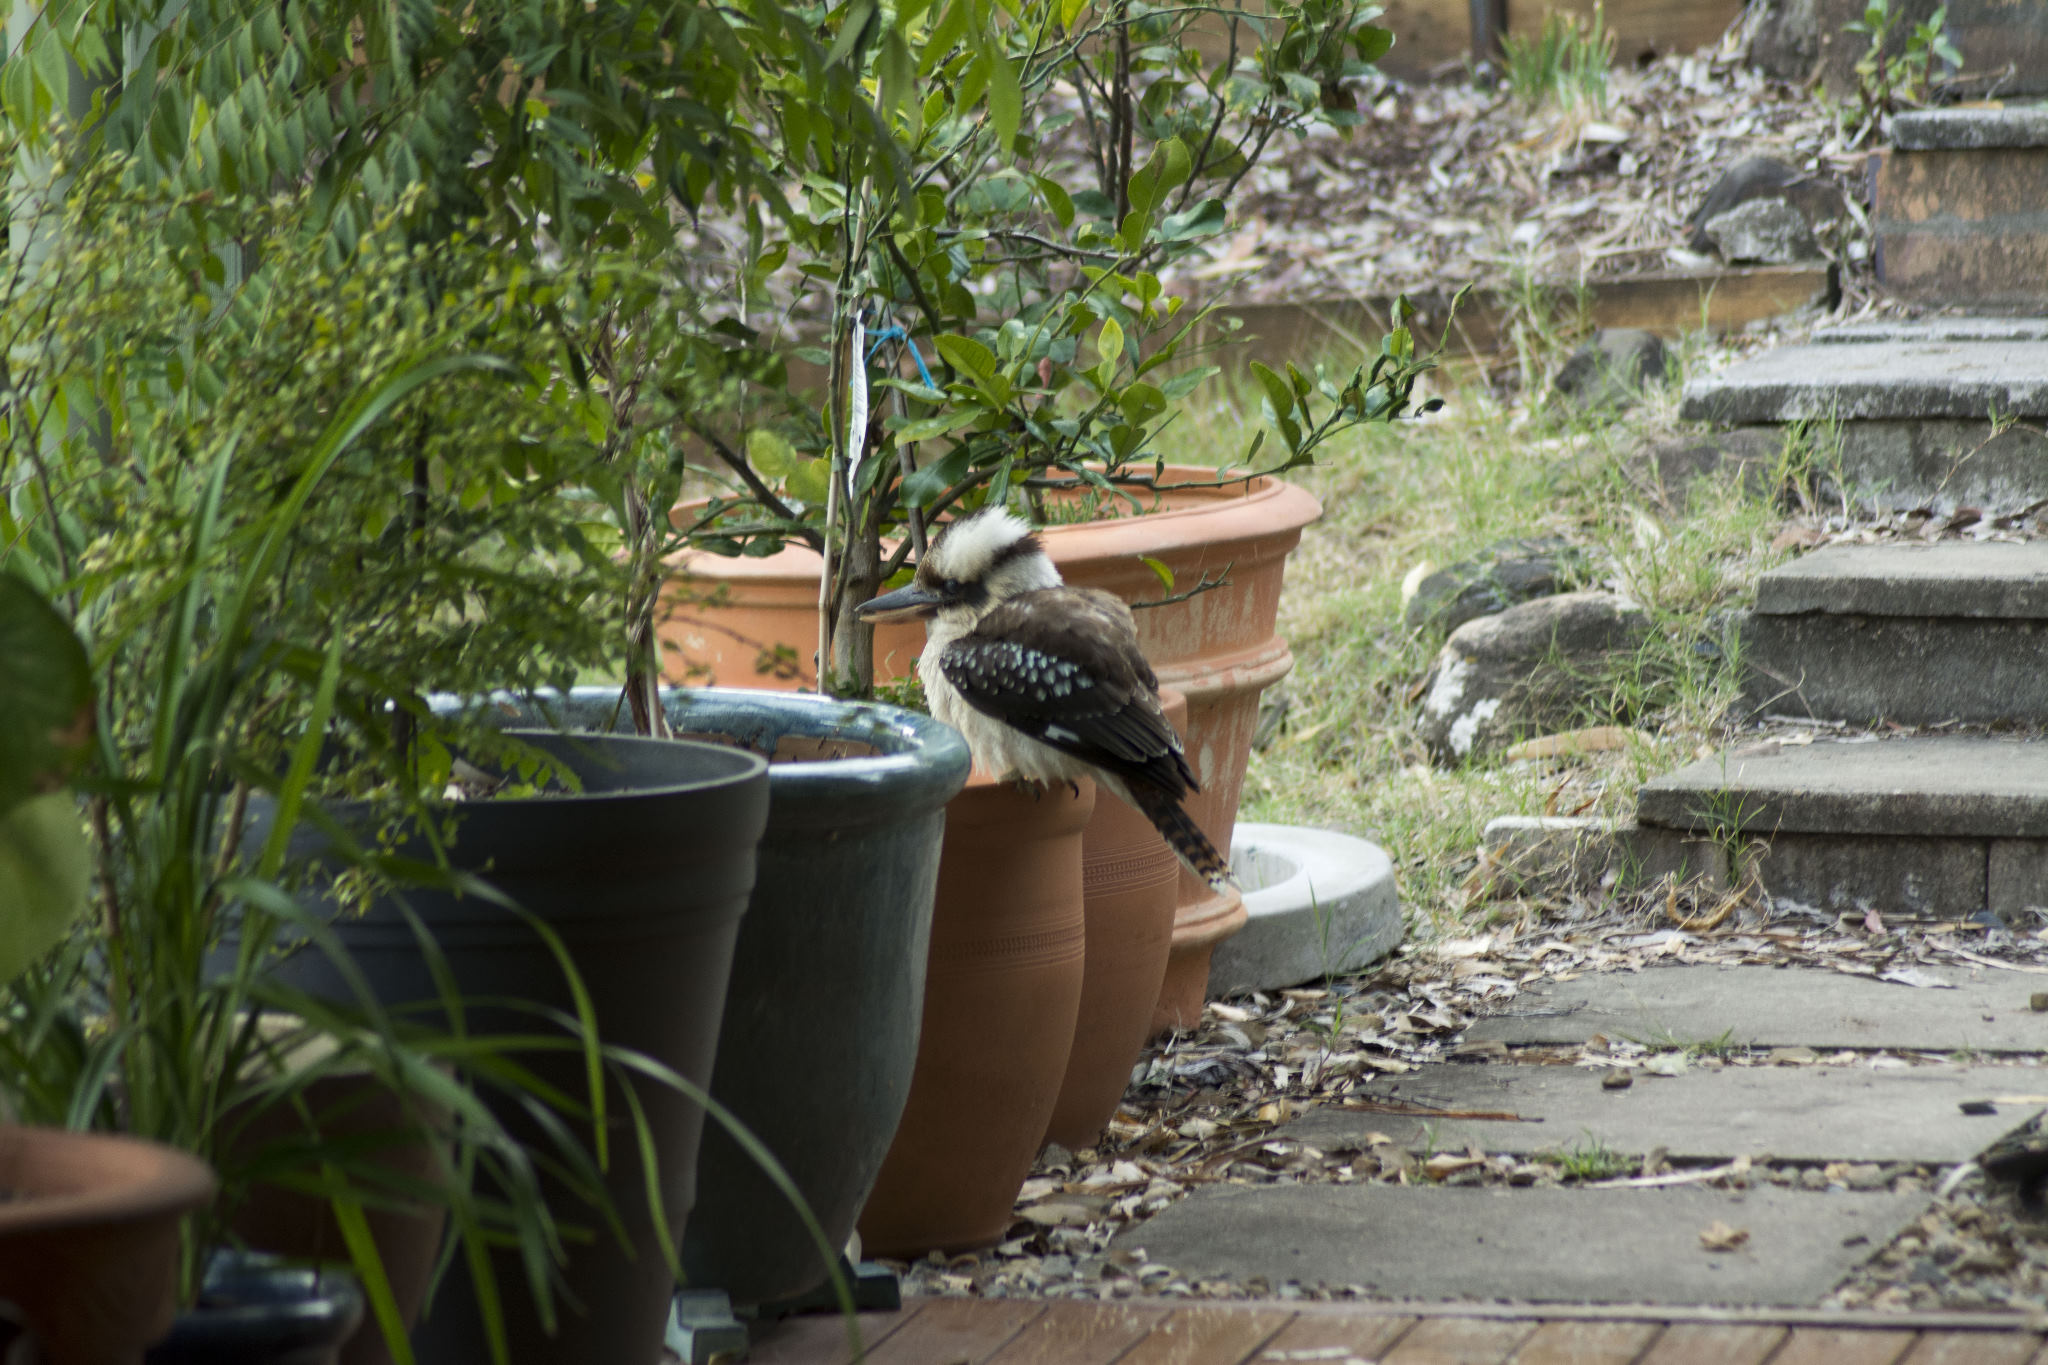 Kookaburra on a pot